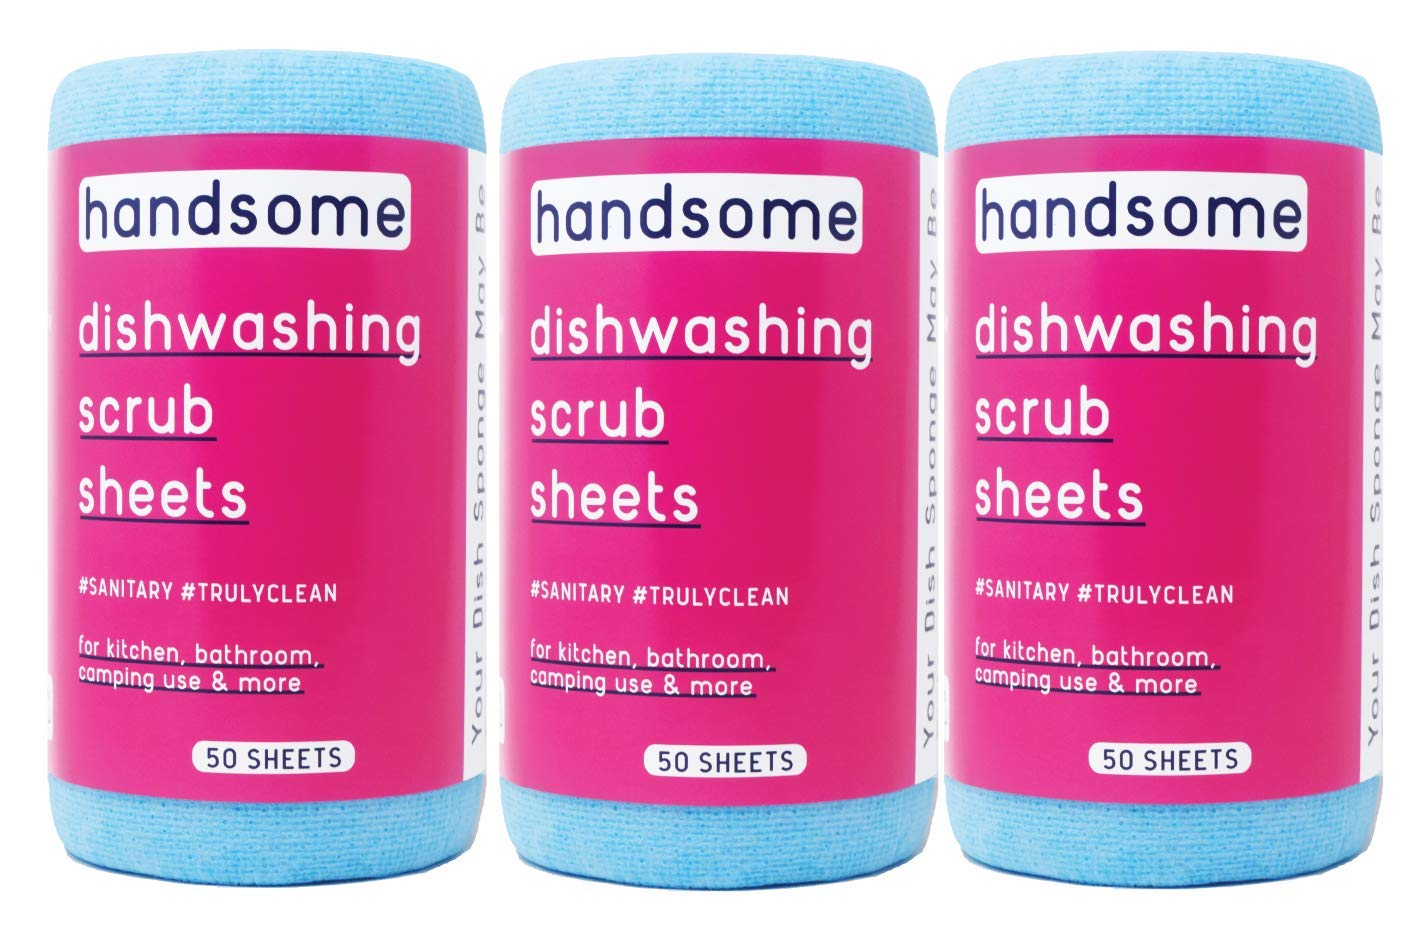 Handsome Scrub, One a Day dishwashing Sheet, Daily Disposable, 50 Day Supply, Anti-Bacterial, Non-Scratch, eco-Friendly, Recyclable scouring pad, use for Dish-Washing, Kitchen, pet, Baby dishwashing by HANDSOME